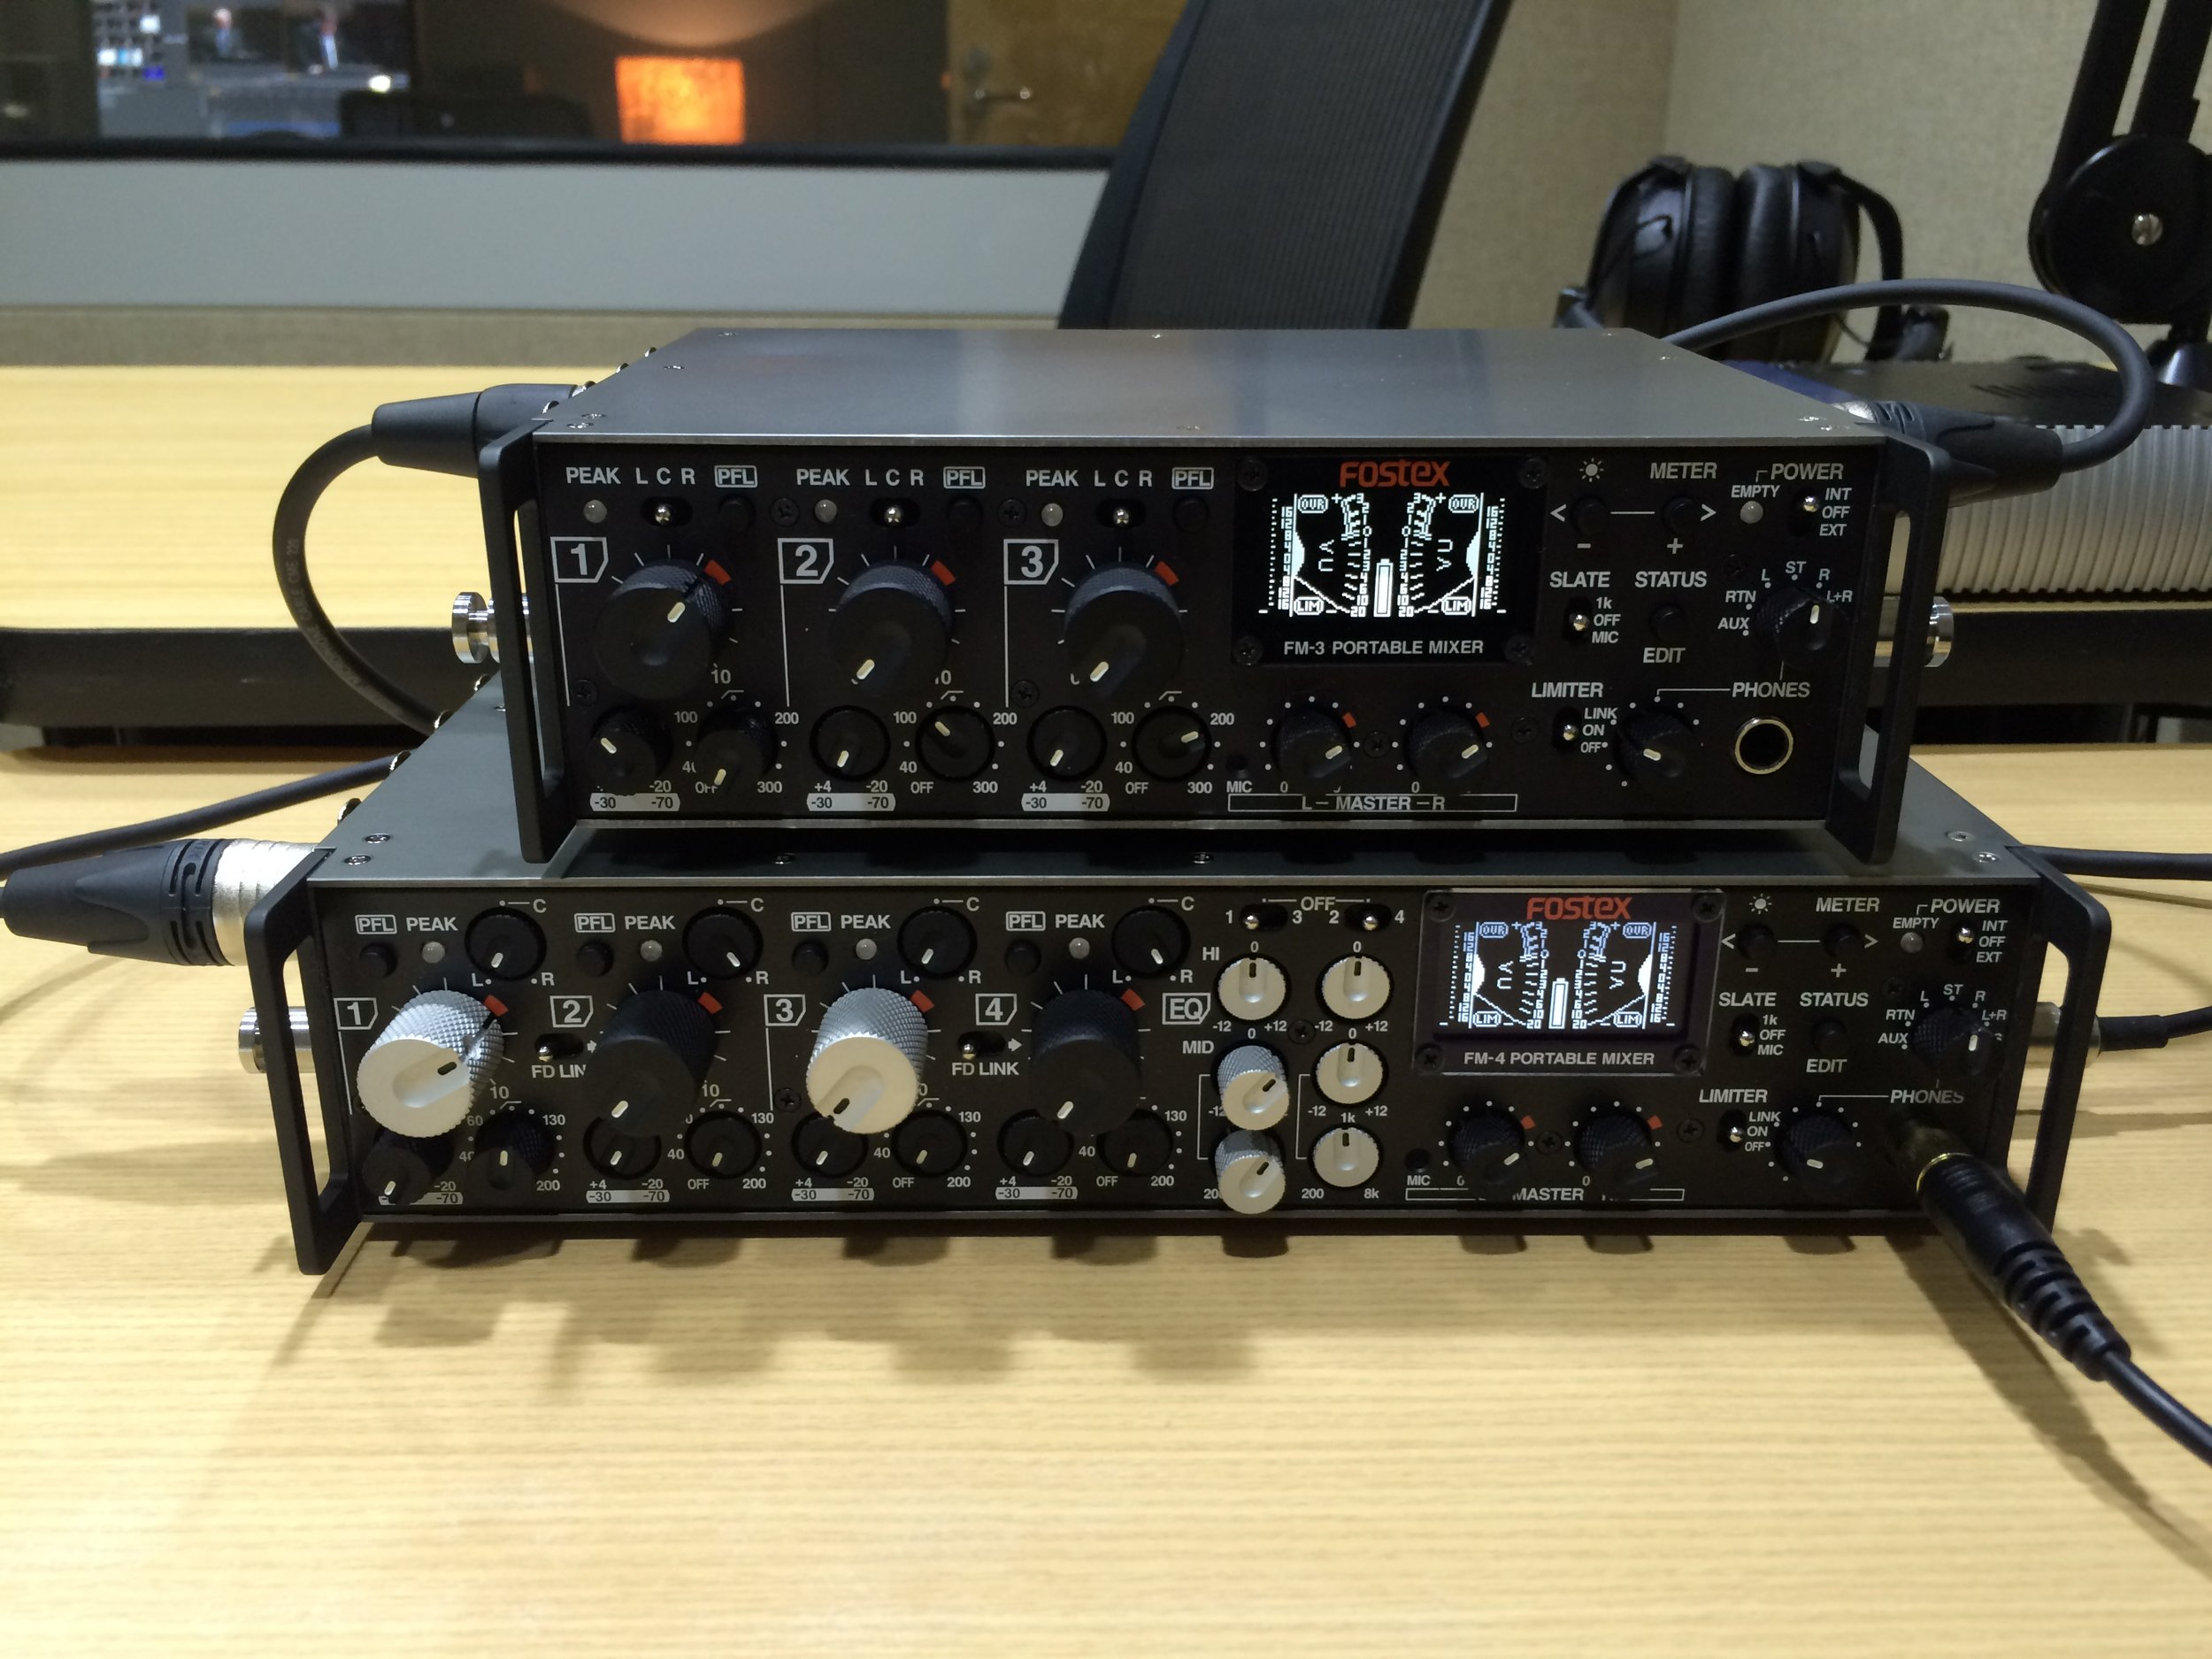 FM-3 and FM-4 in team mode.